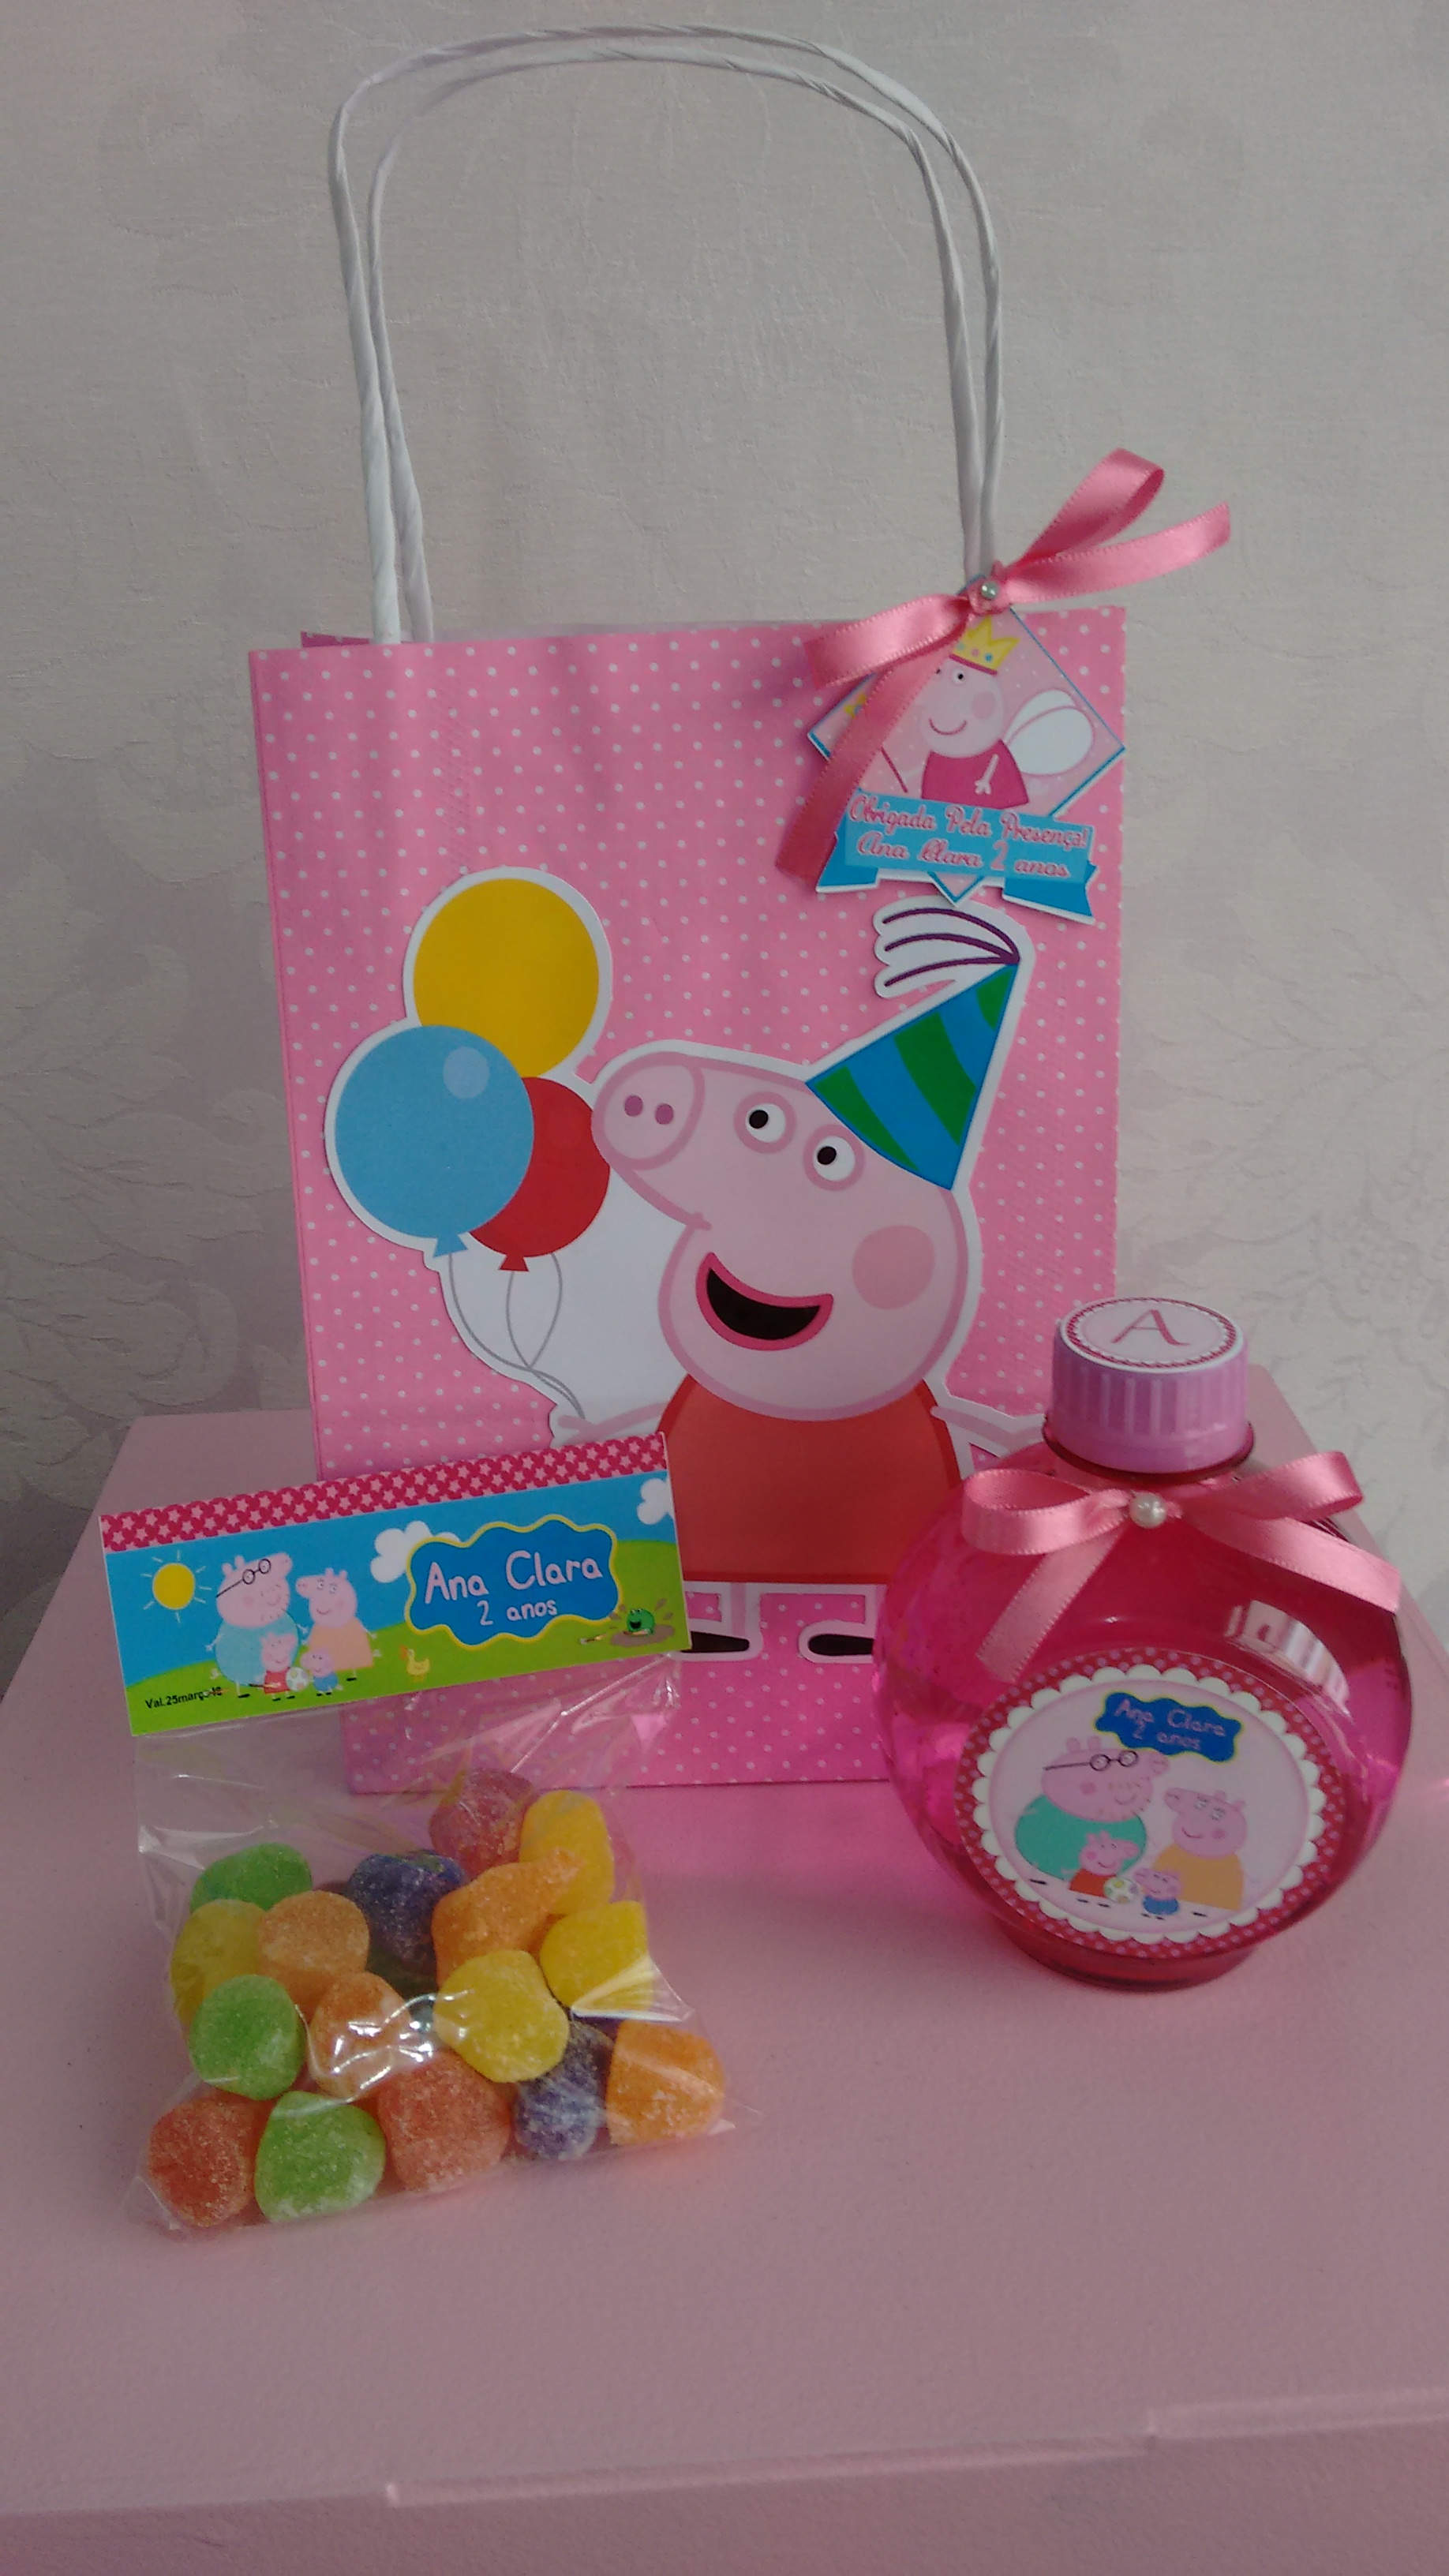 Kit lembrancinhas peppa pig no Elo7 | DECORATE EVENTOS PERSONALIZADOS  (55C5B7)